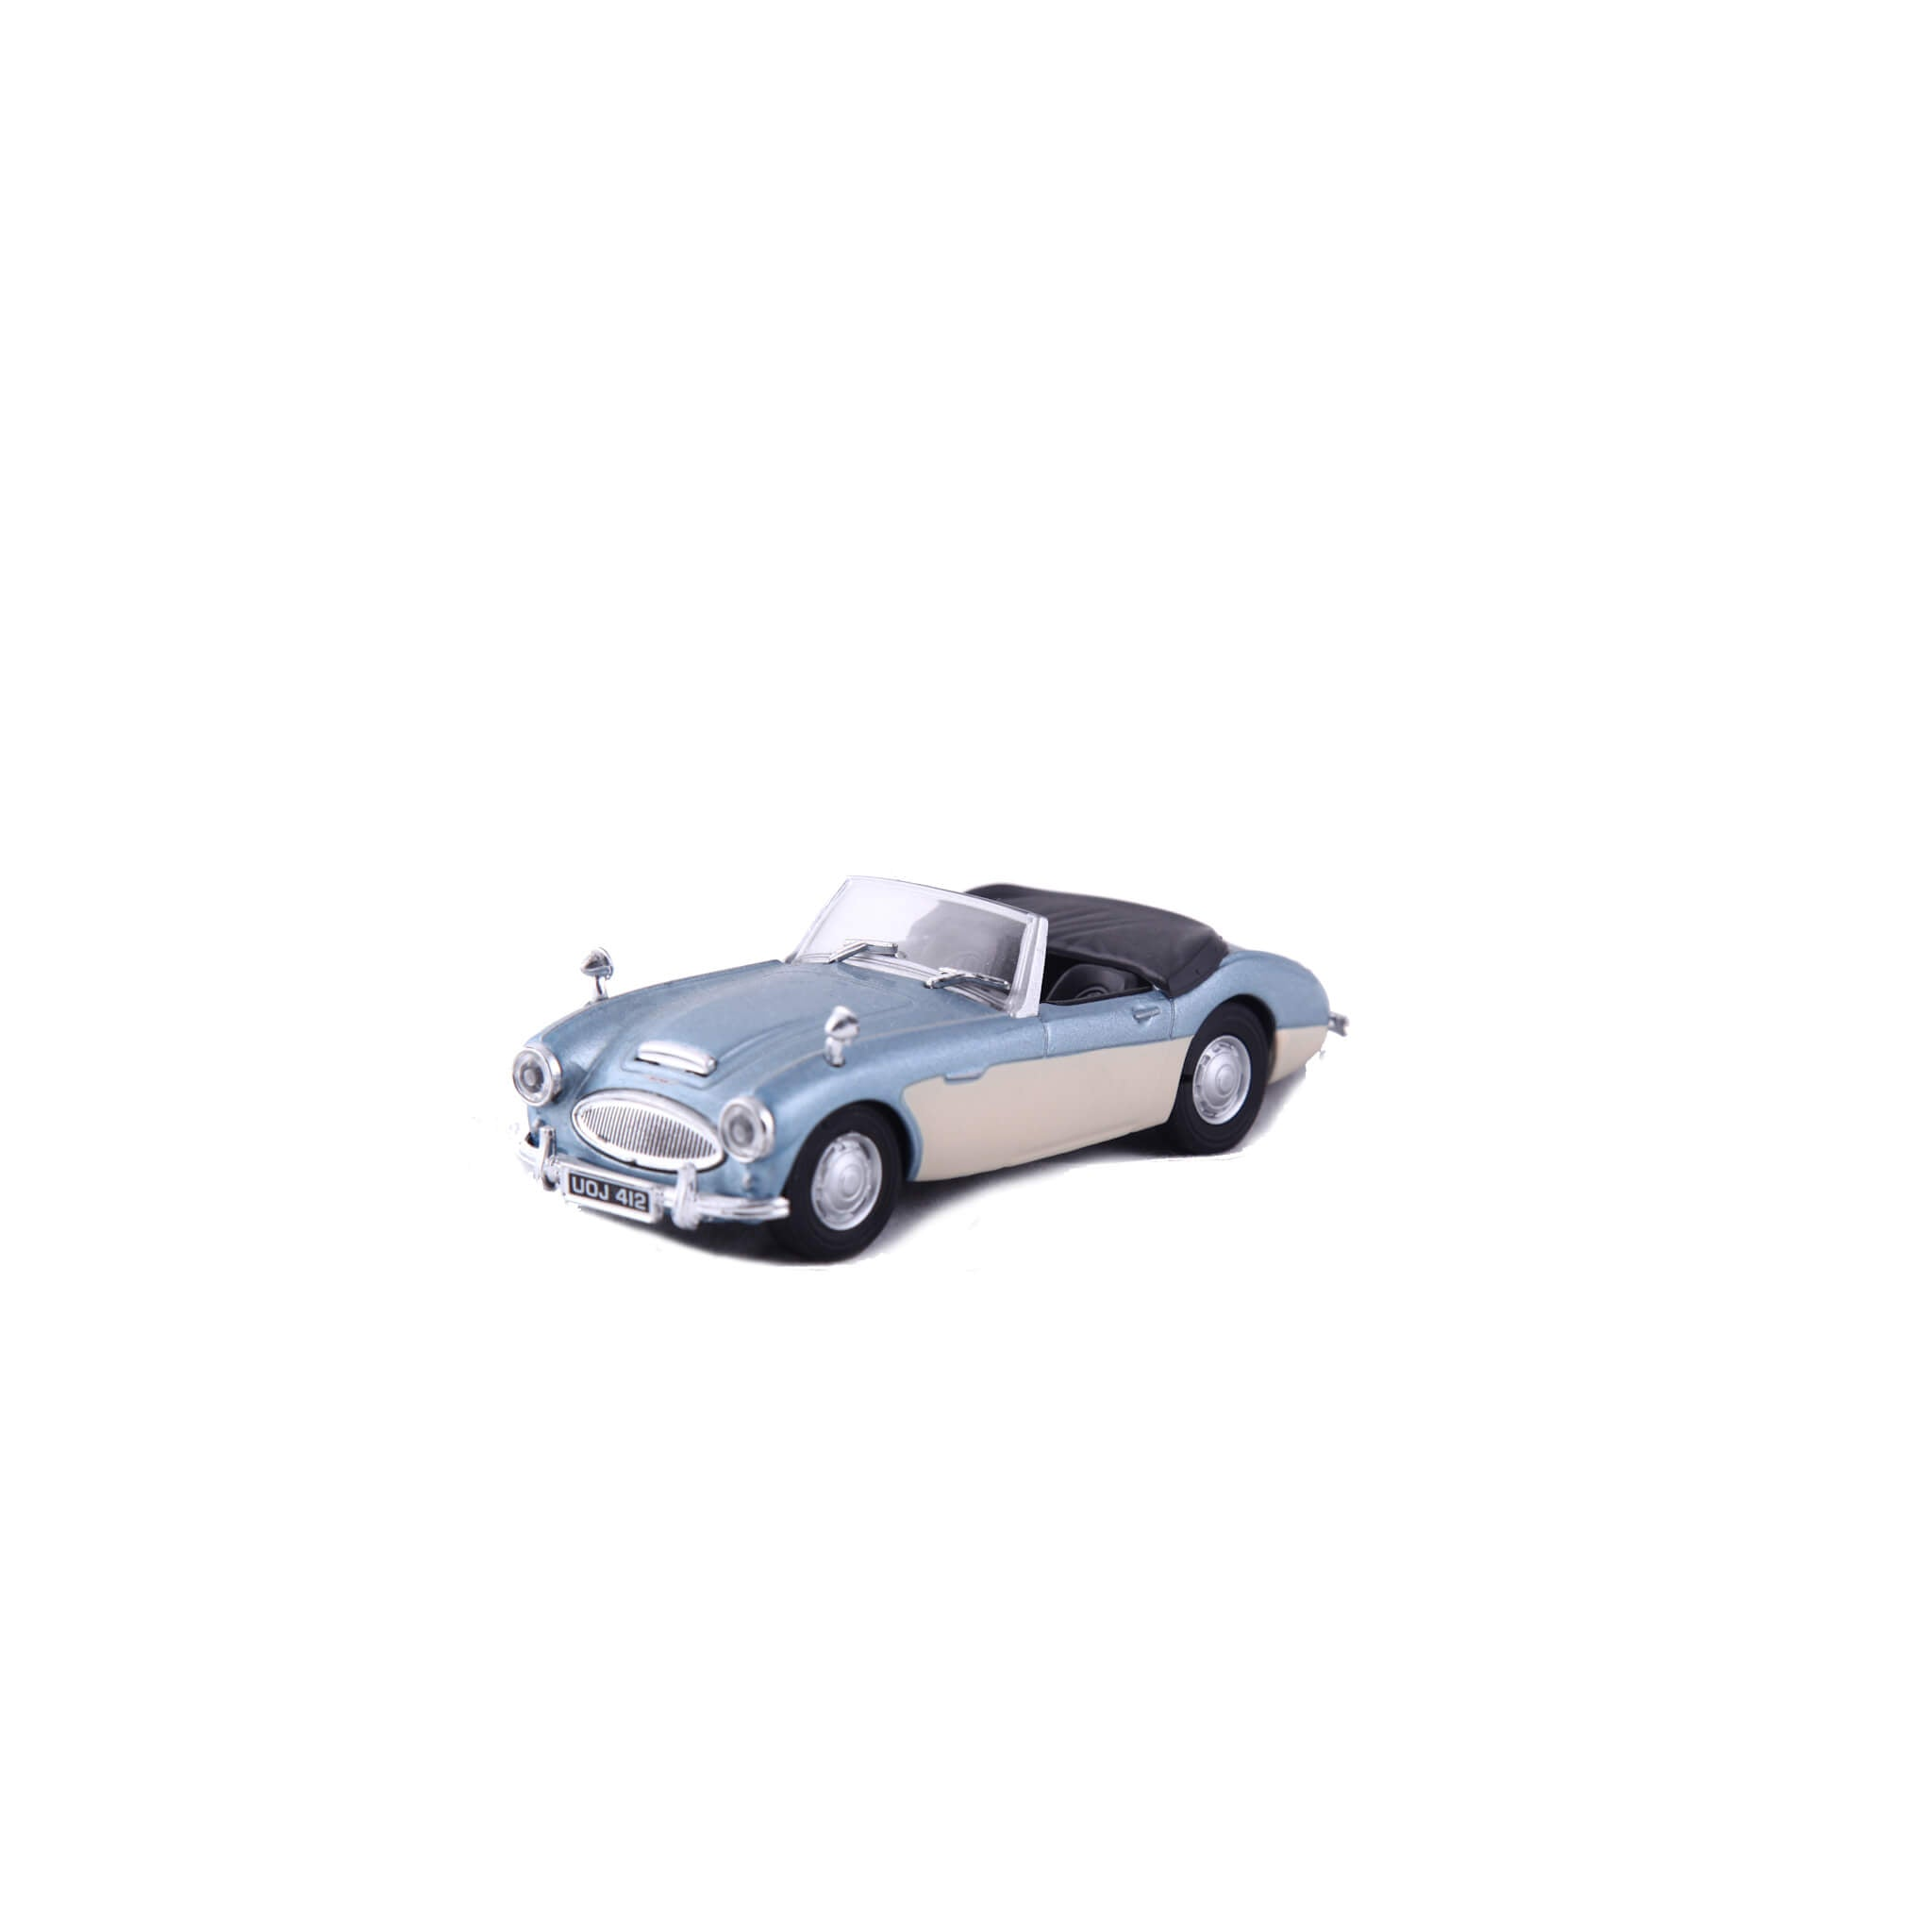 1961 Austin Healey 3000 Mk1 1:43 Model By Hongwell Model